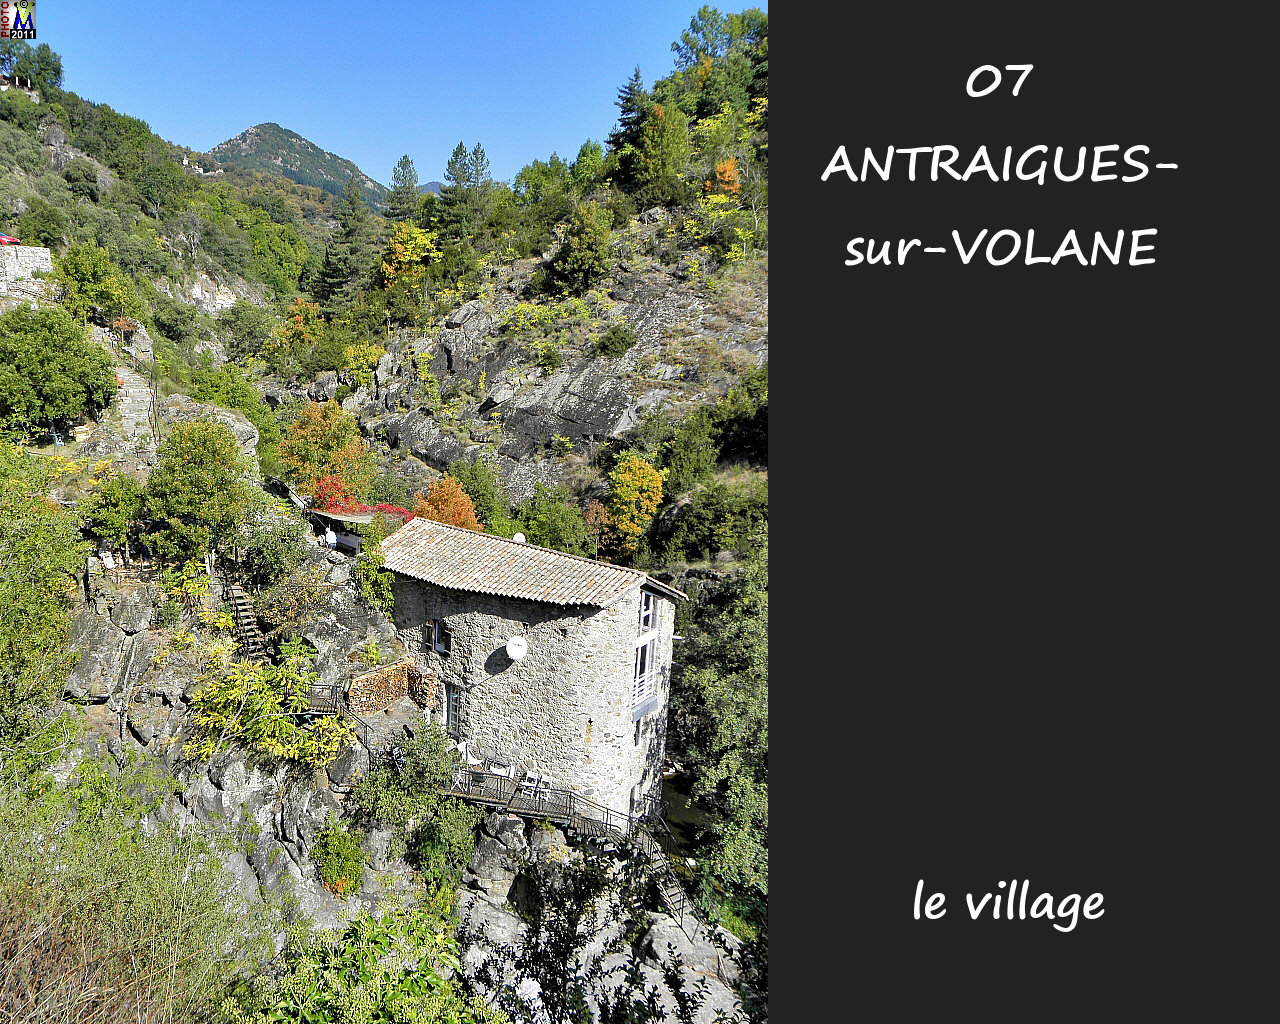 07ANTRAIGUES-VOLANE_village_132.jpg